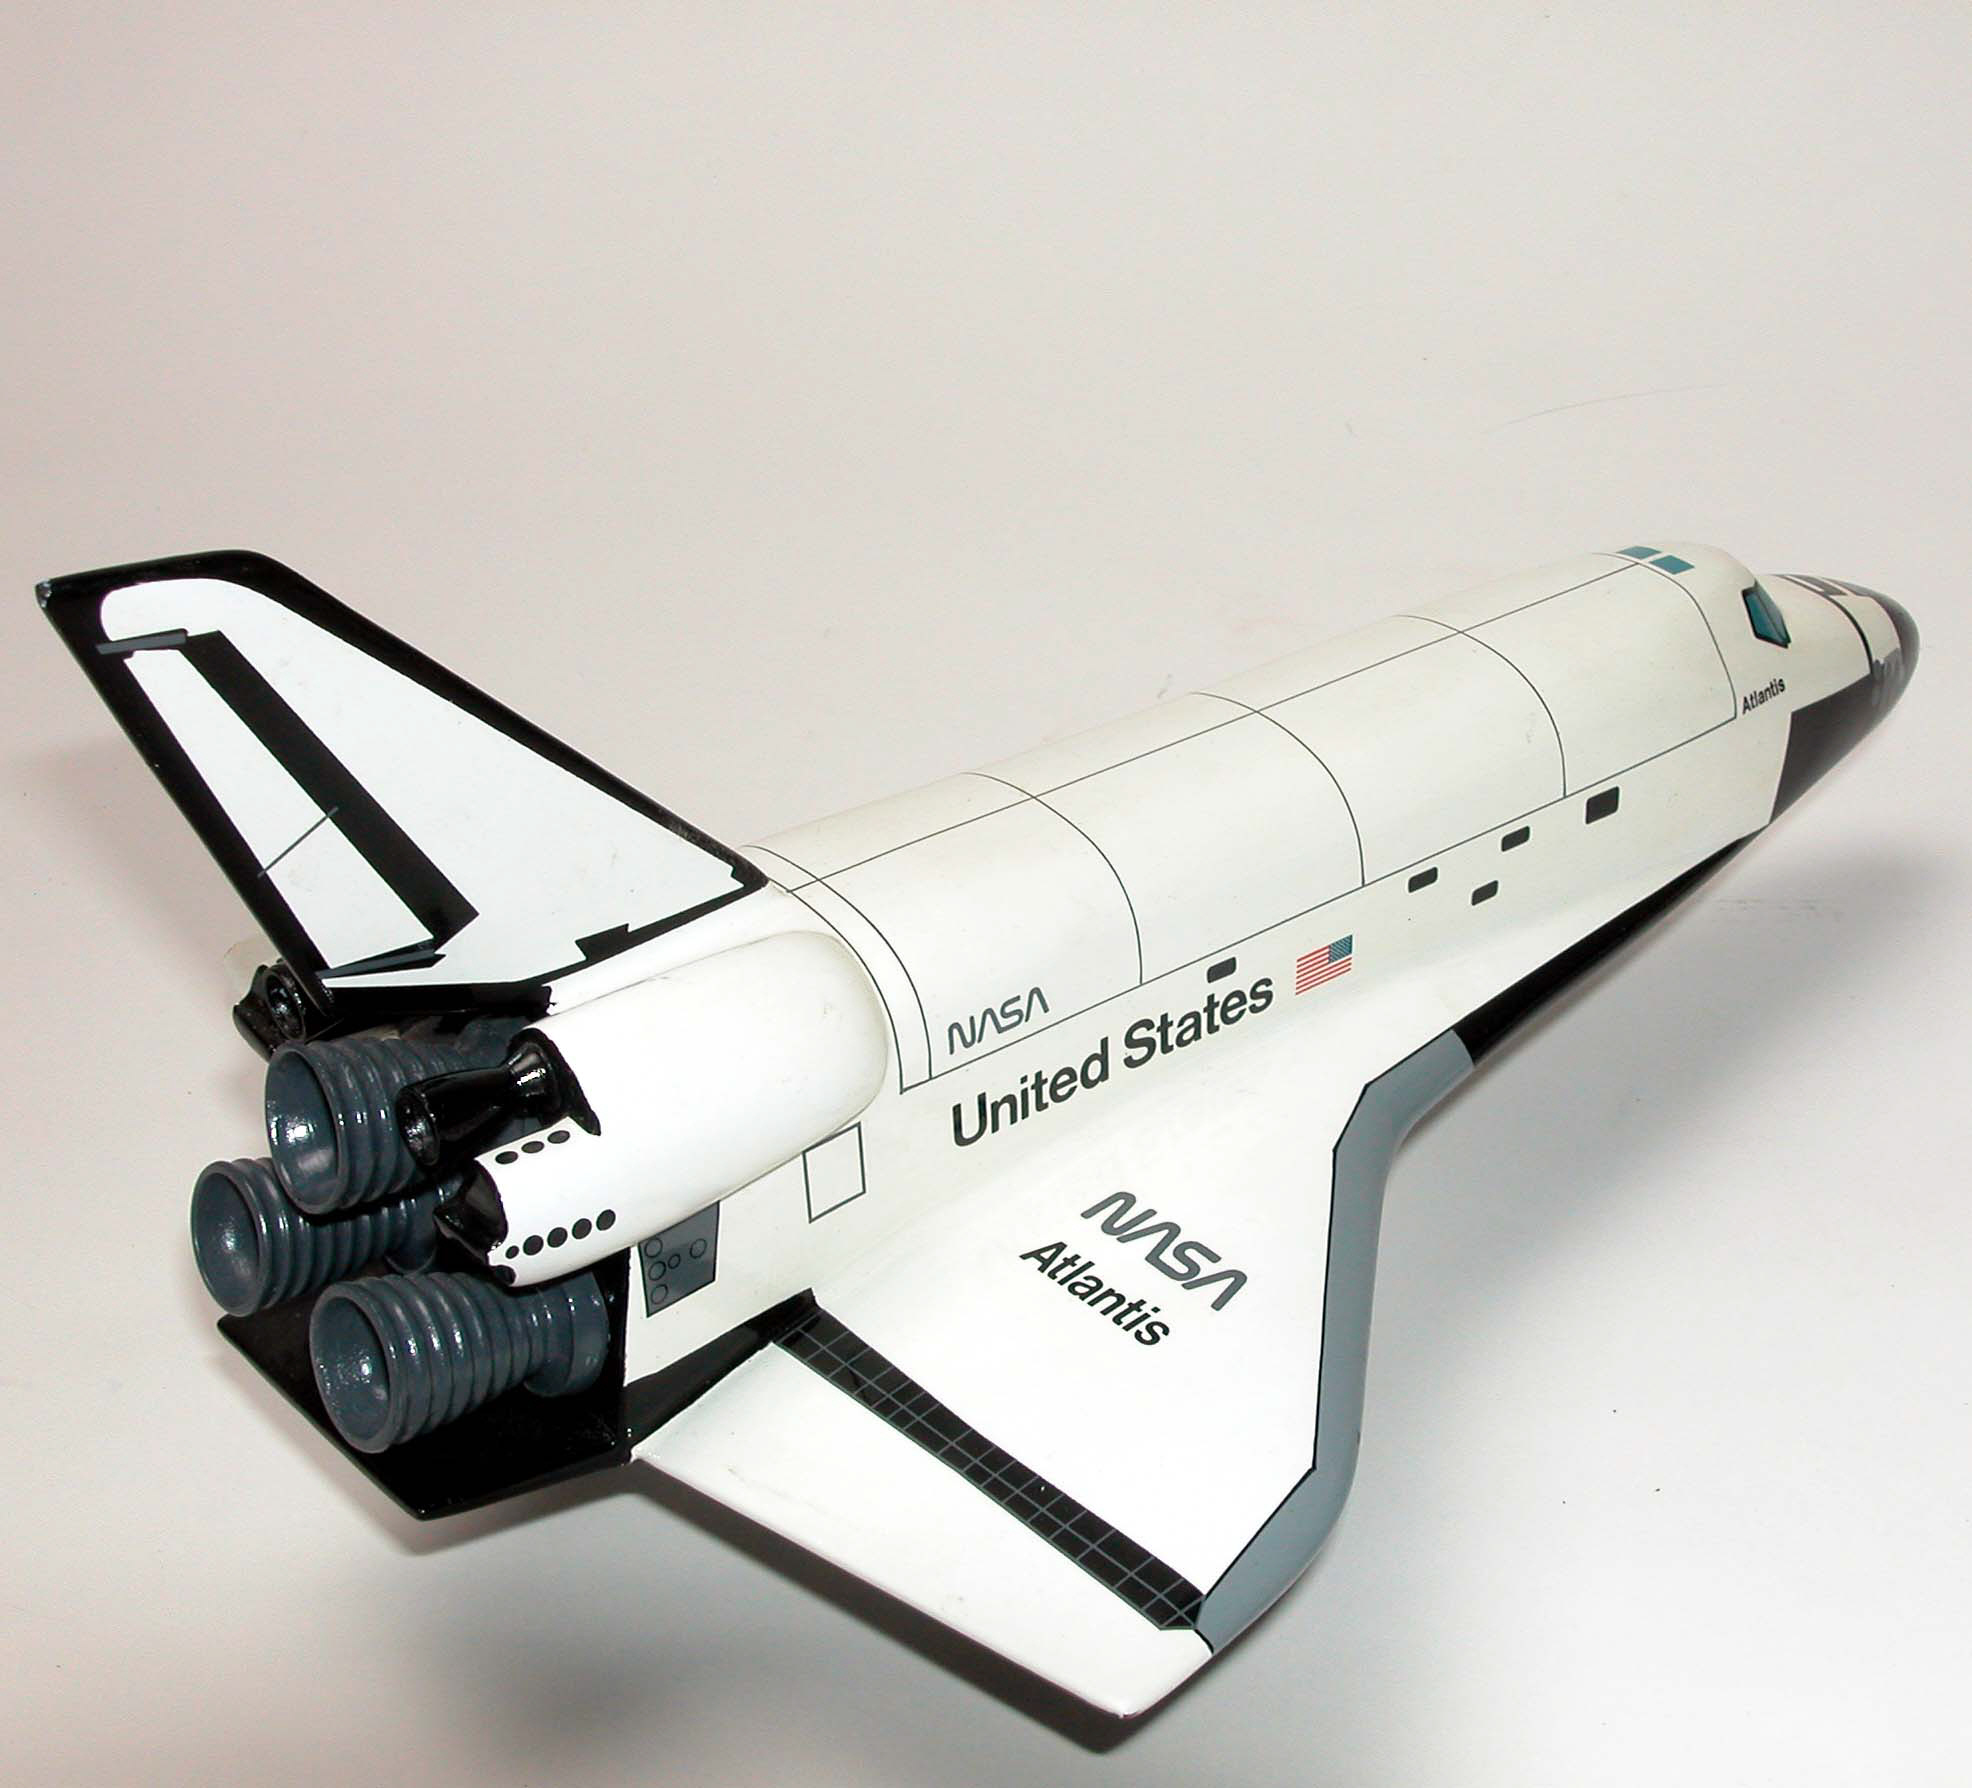 space shuttle atlantis which is orbiter - photo #36